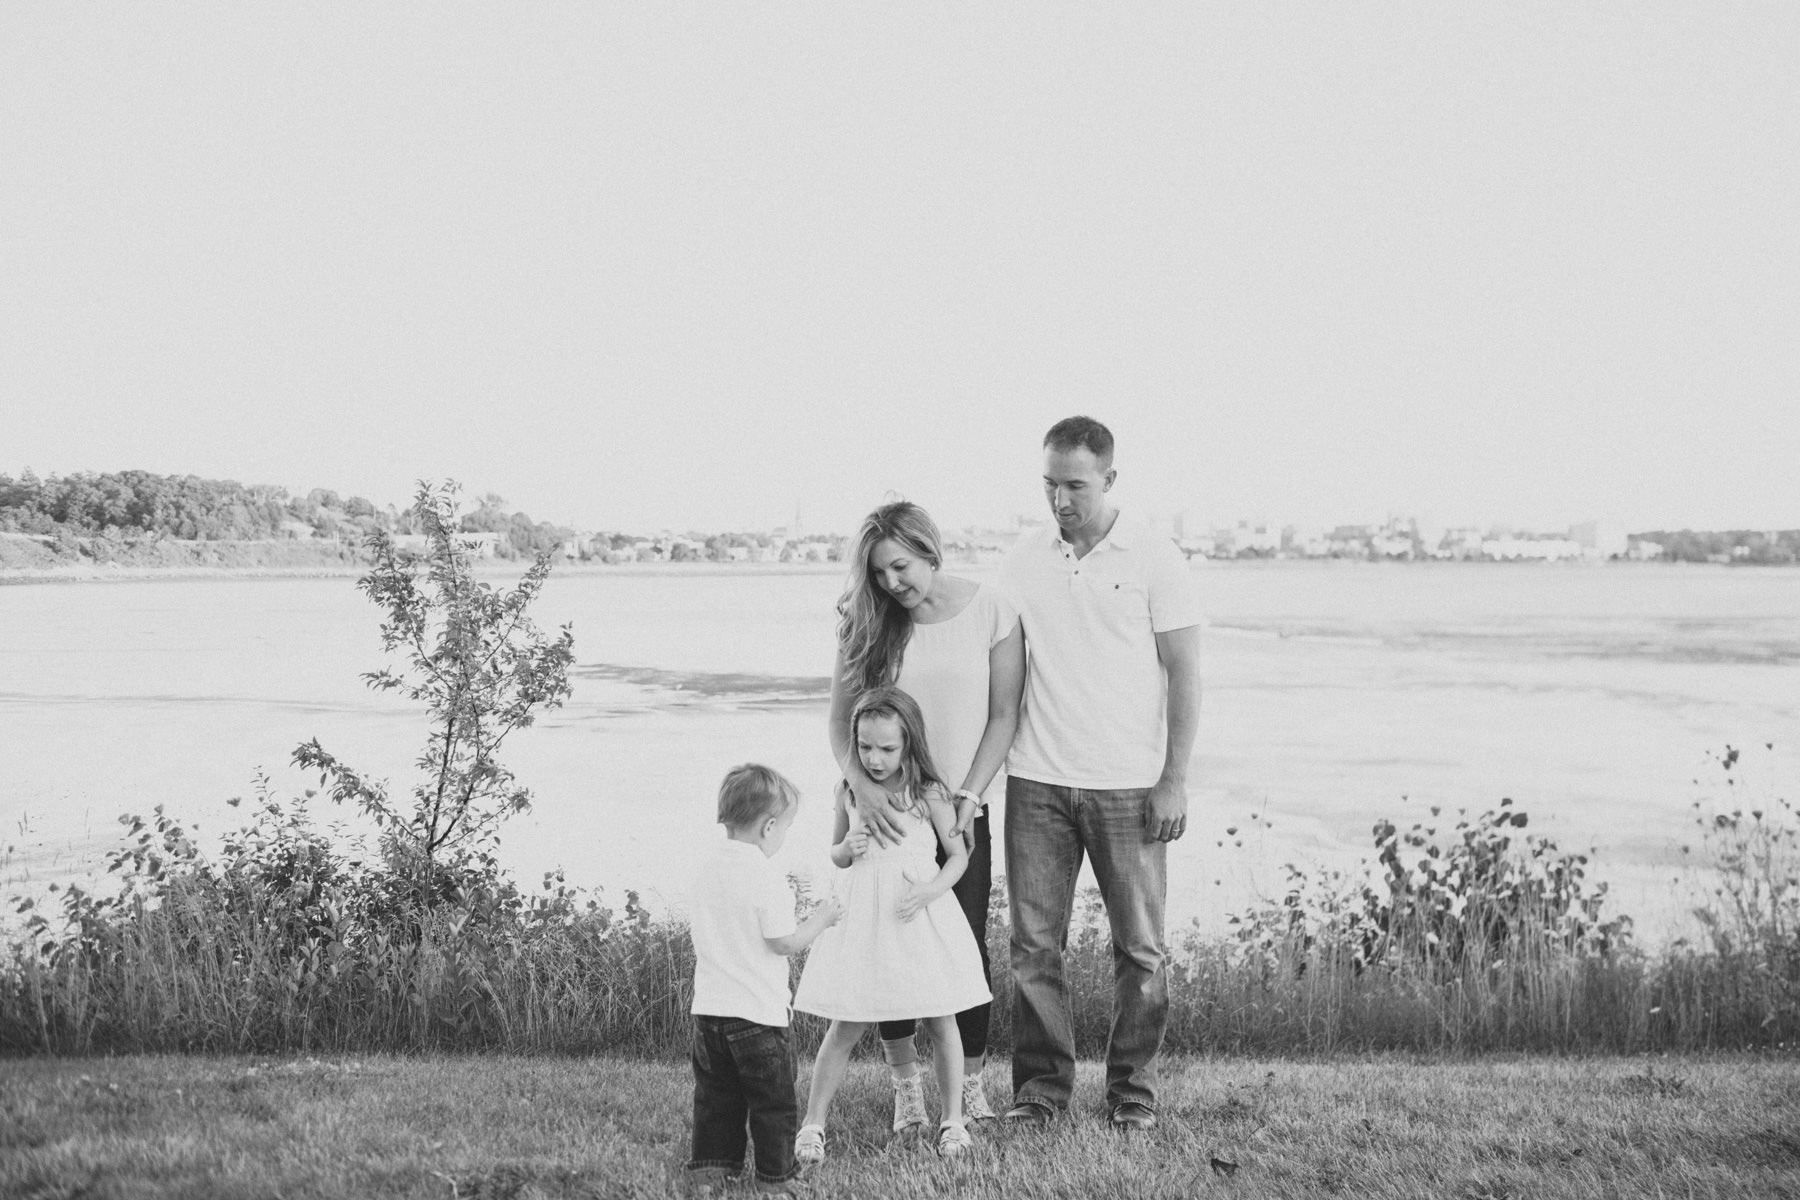 Family-Photography-At-Home-Urbsn-Portland-Maine-4095